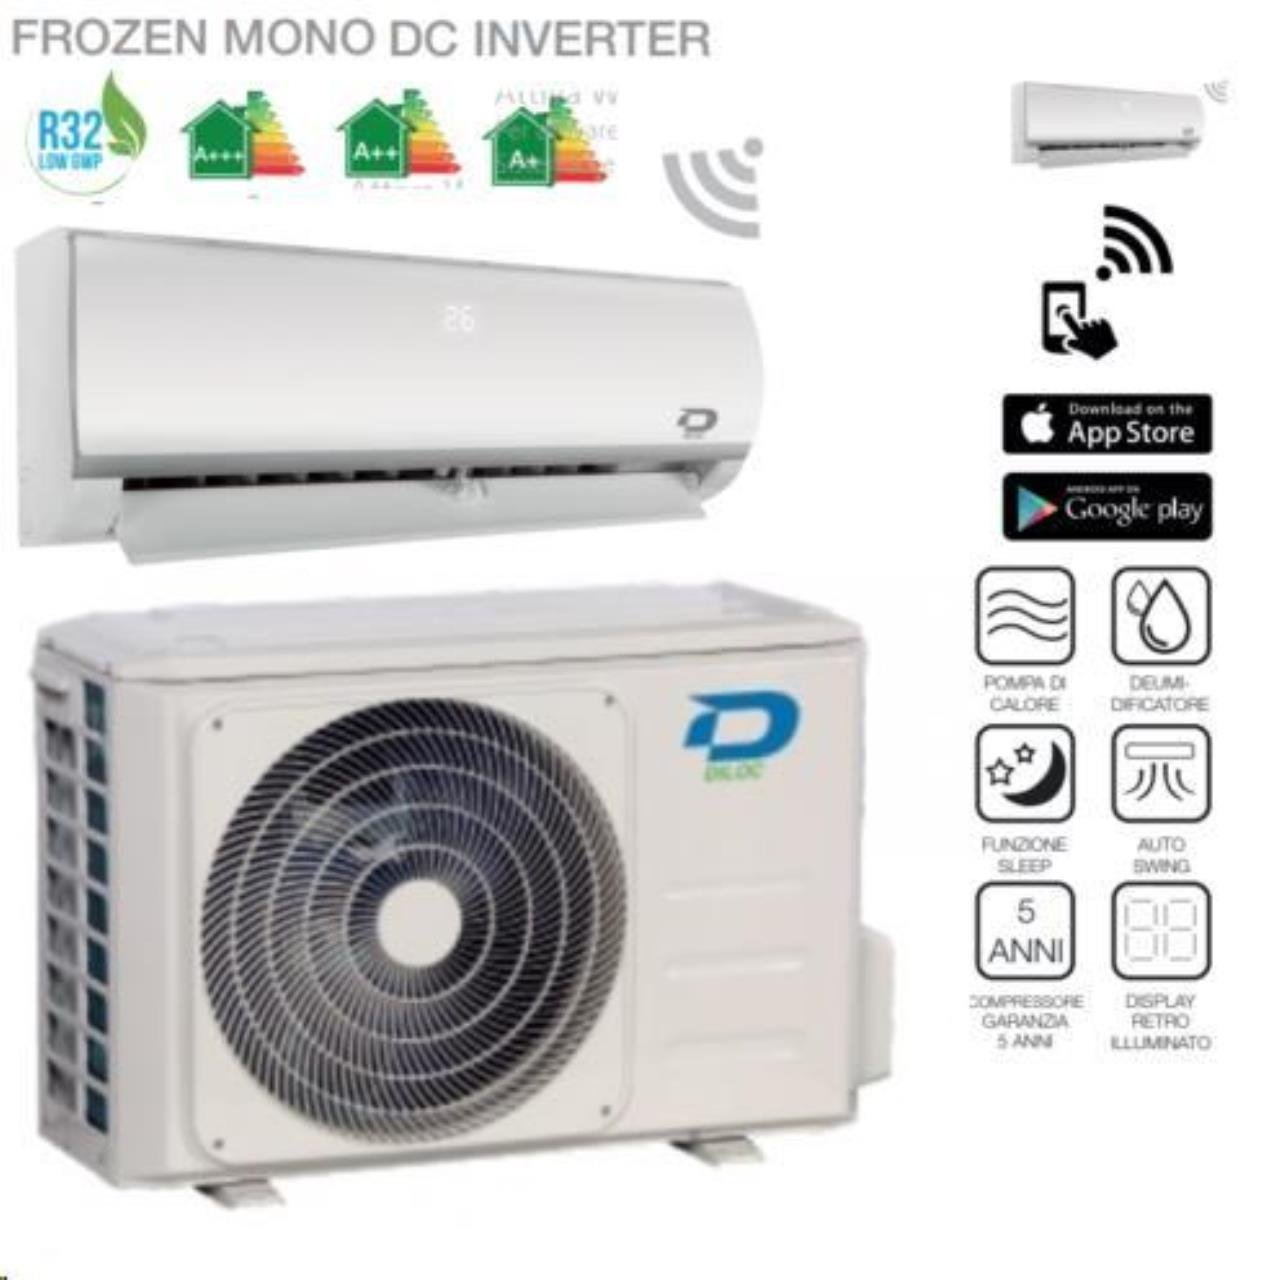 DILOC Frozen Aire Acondicionado 9000 BTU R32 - Climatizador Inverter de pared - D. frozen9 + D. frozen109 Compresor Sharp: Amazon.es: Bricolaje y ...